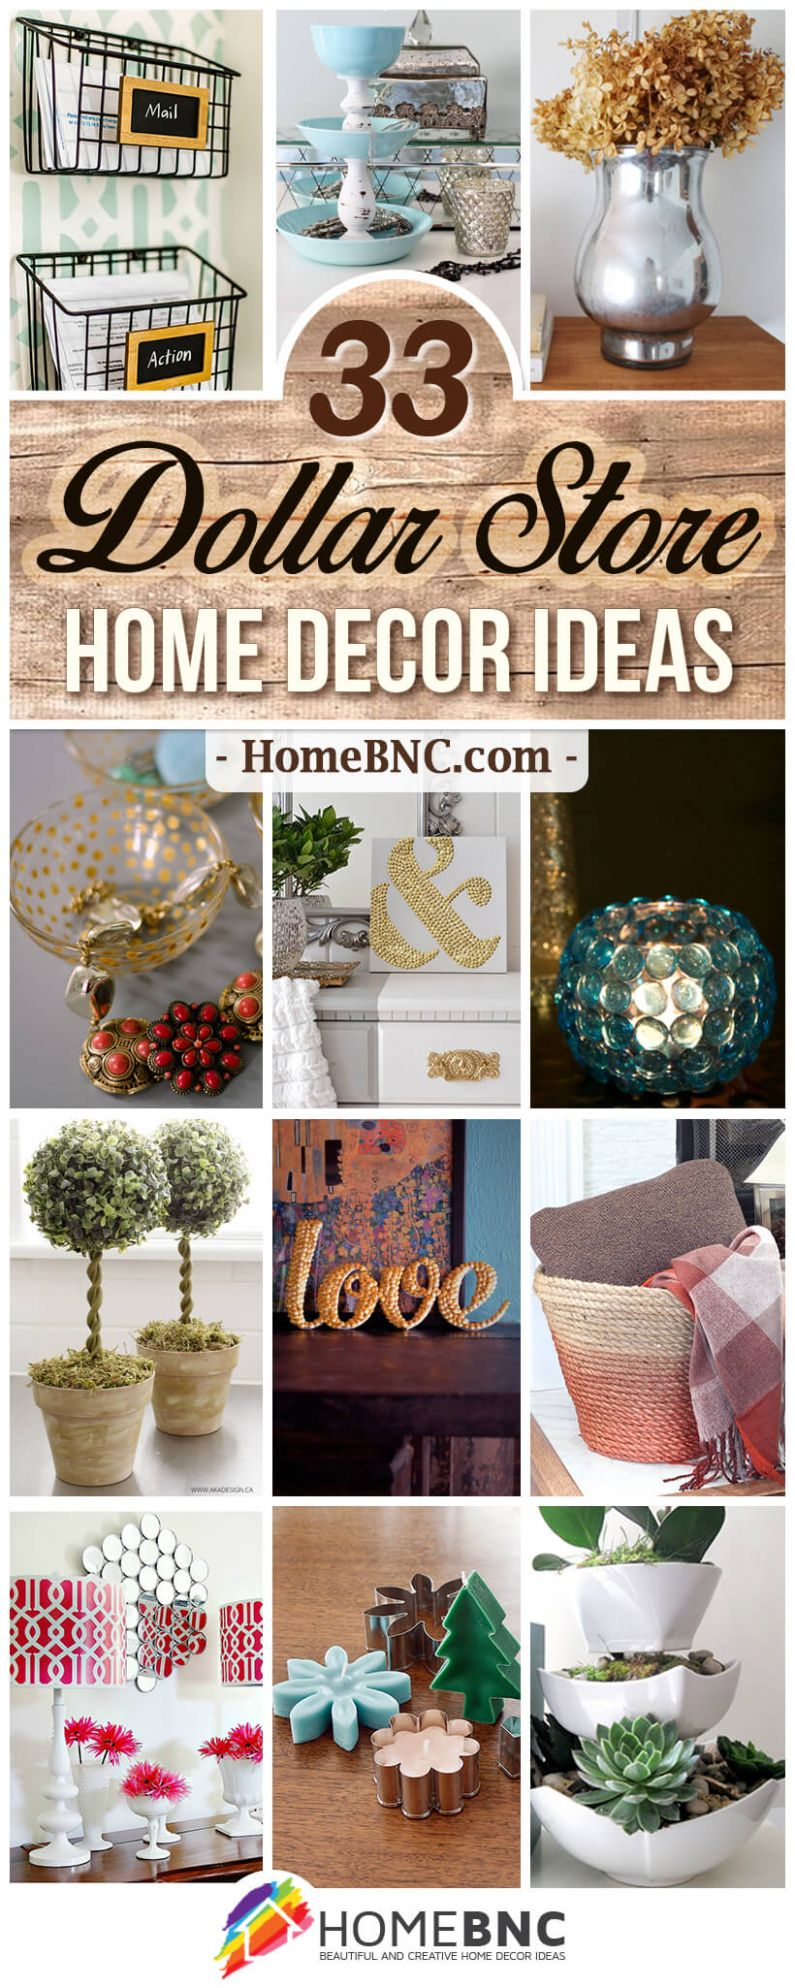 12 Best DIY Dollar Store Home Decor Ideas and Designs for 12